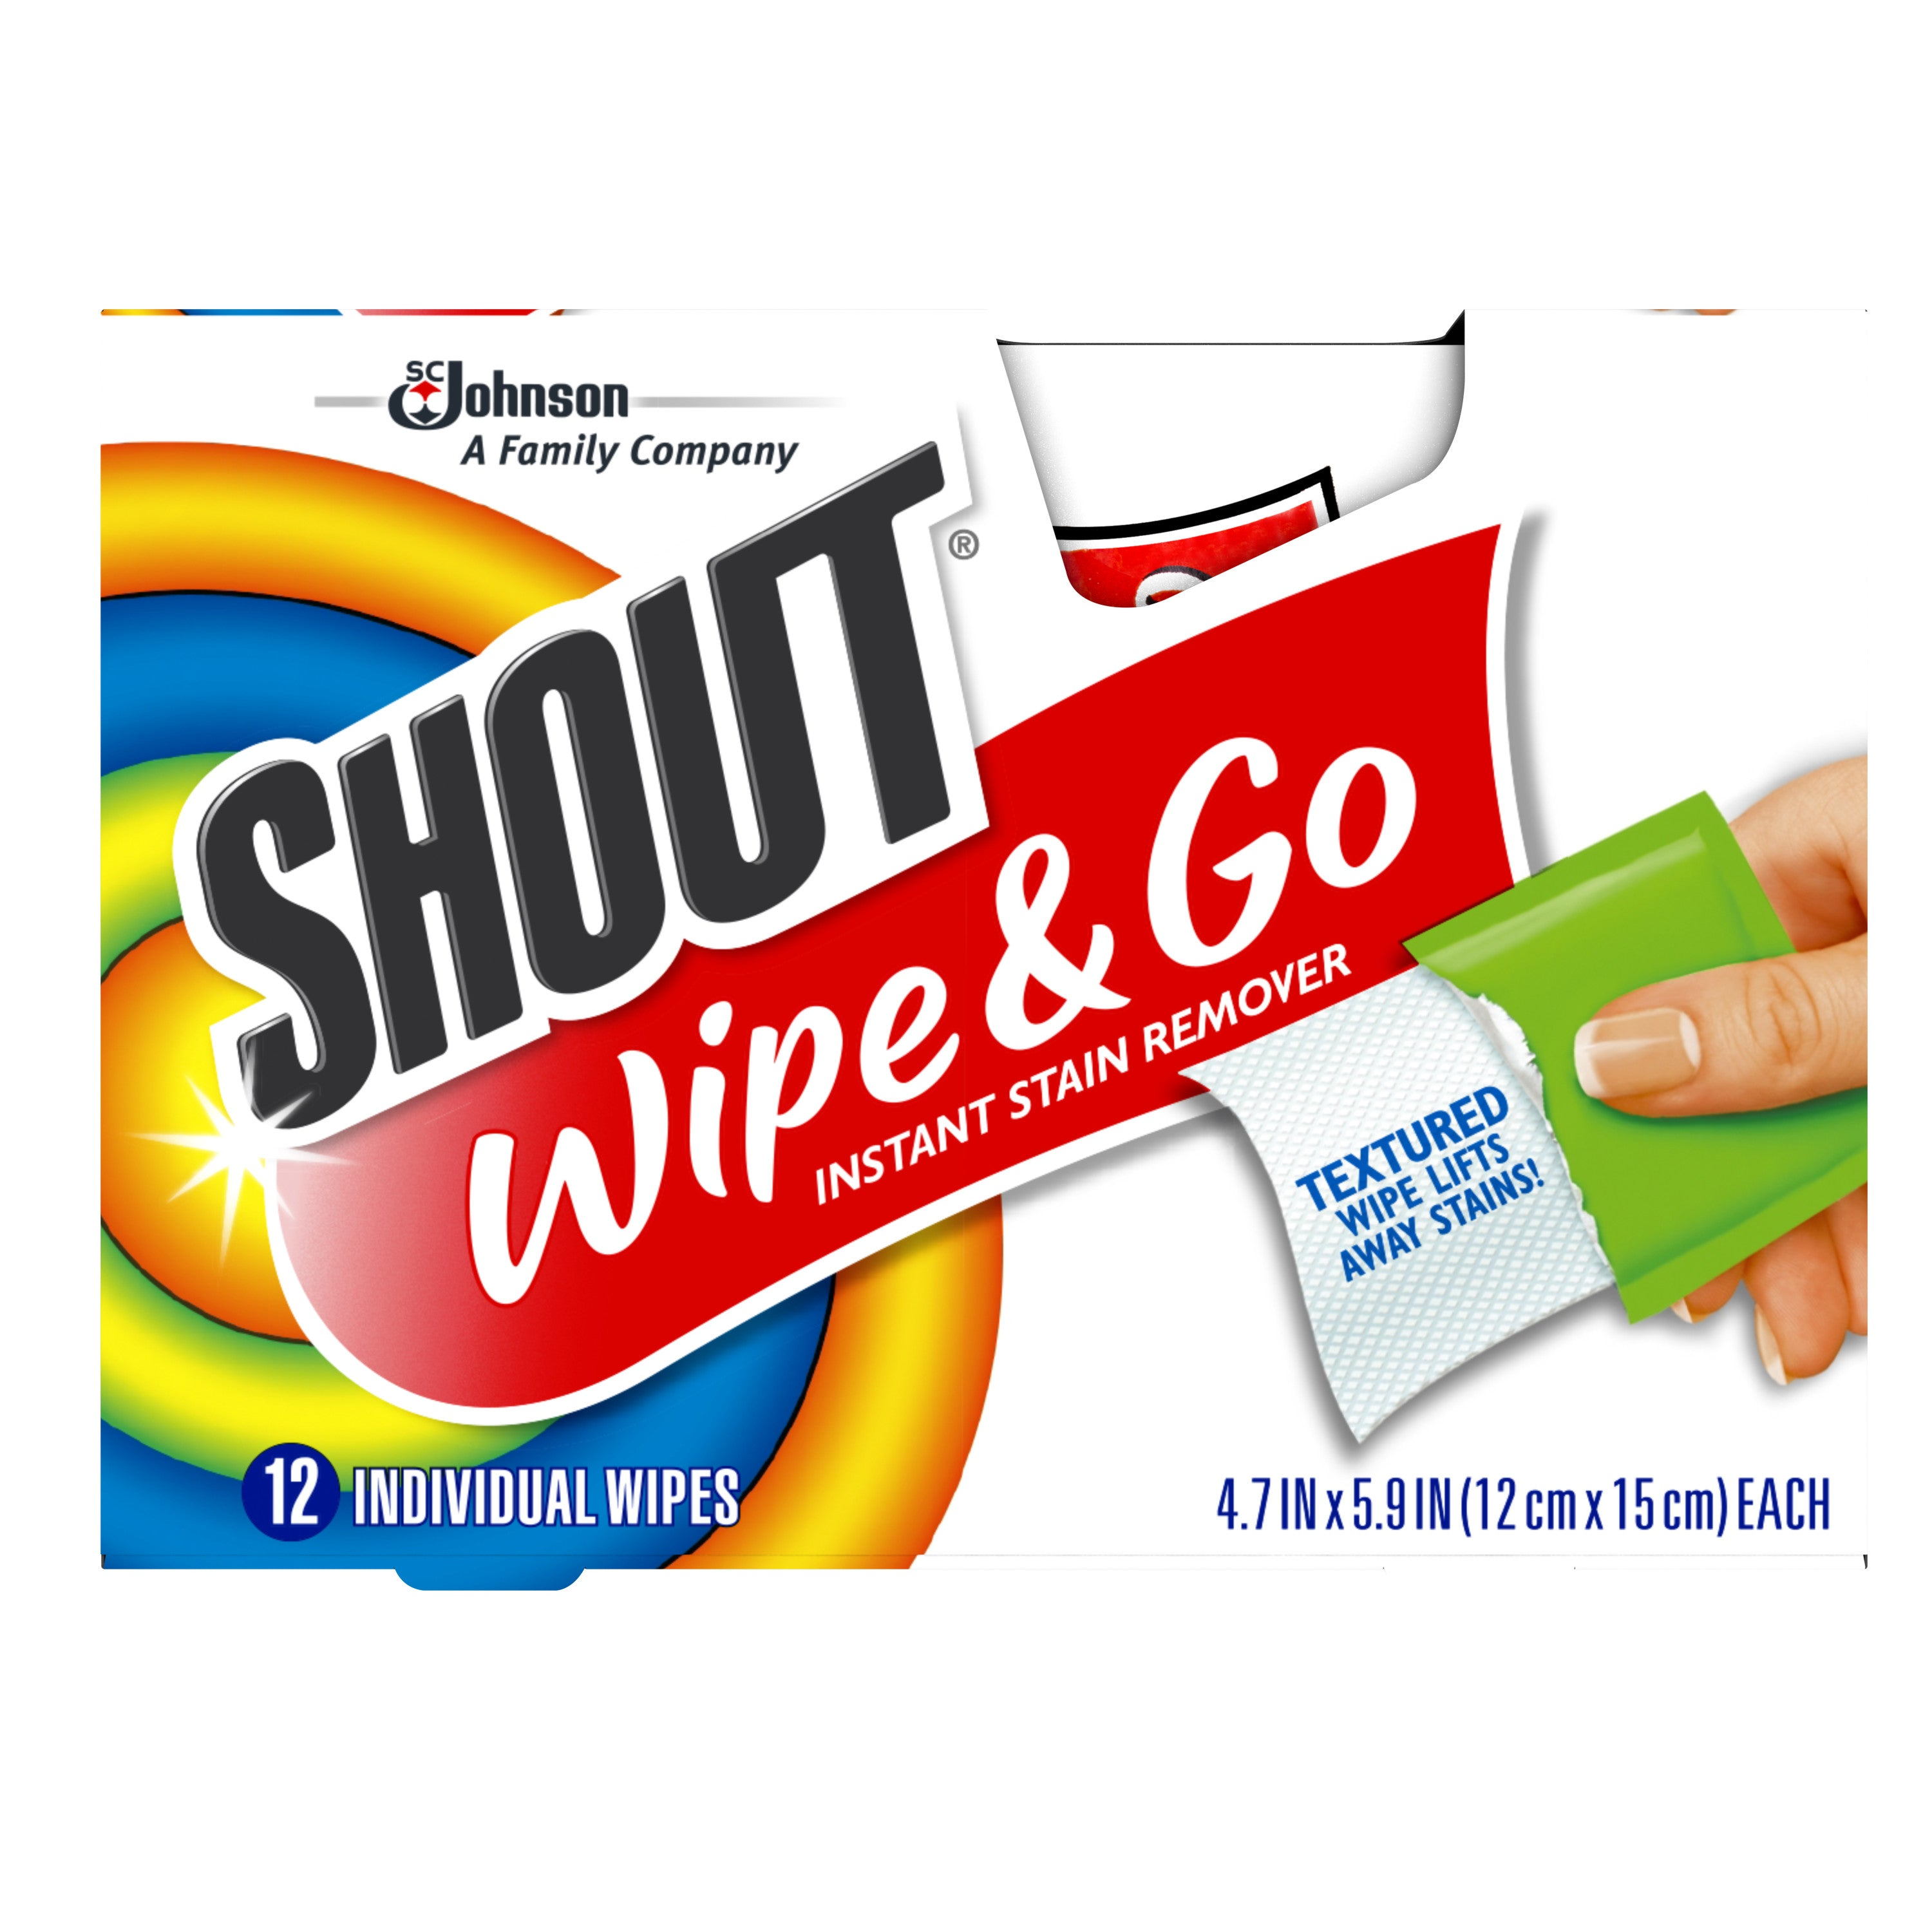 Shout Wipe & Go, Instant Stain Remover, 12 Wipes - FLJ CORPORATIONS